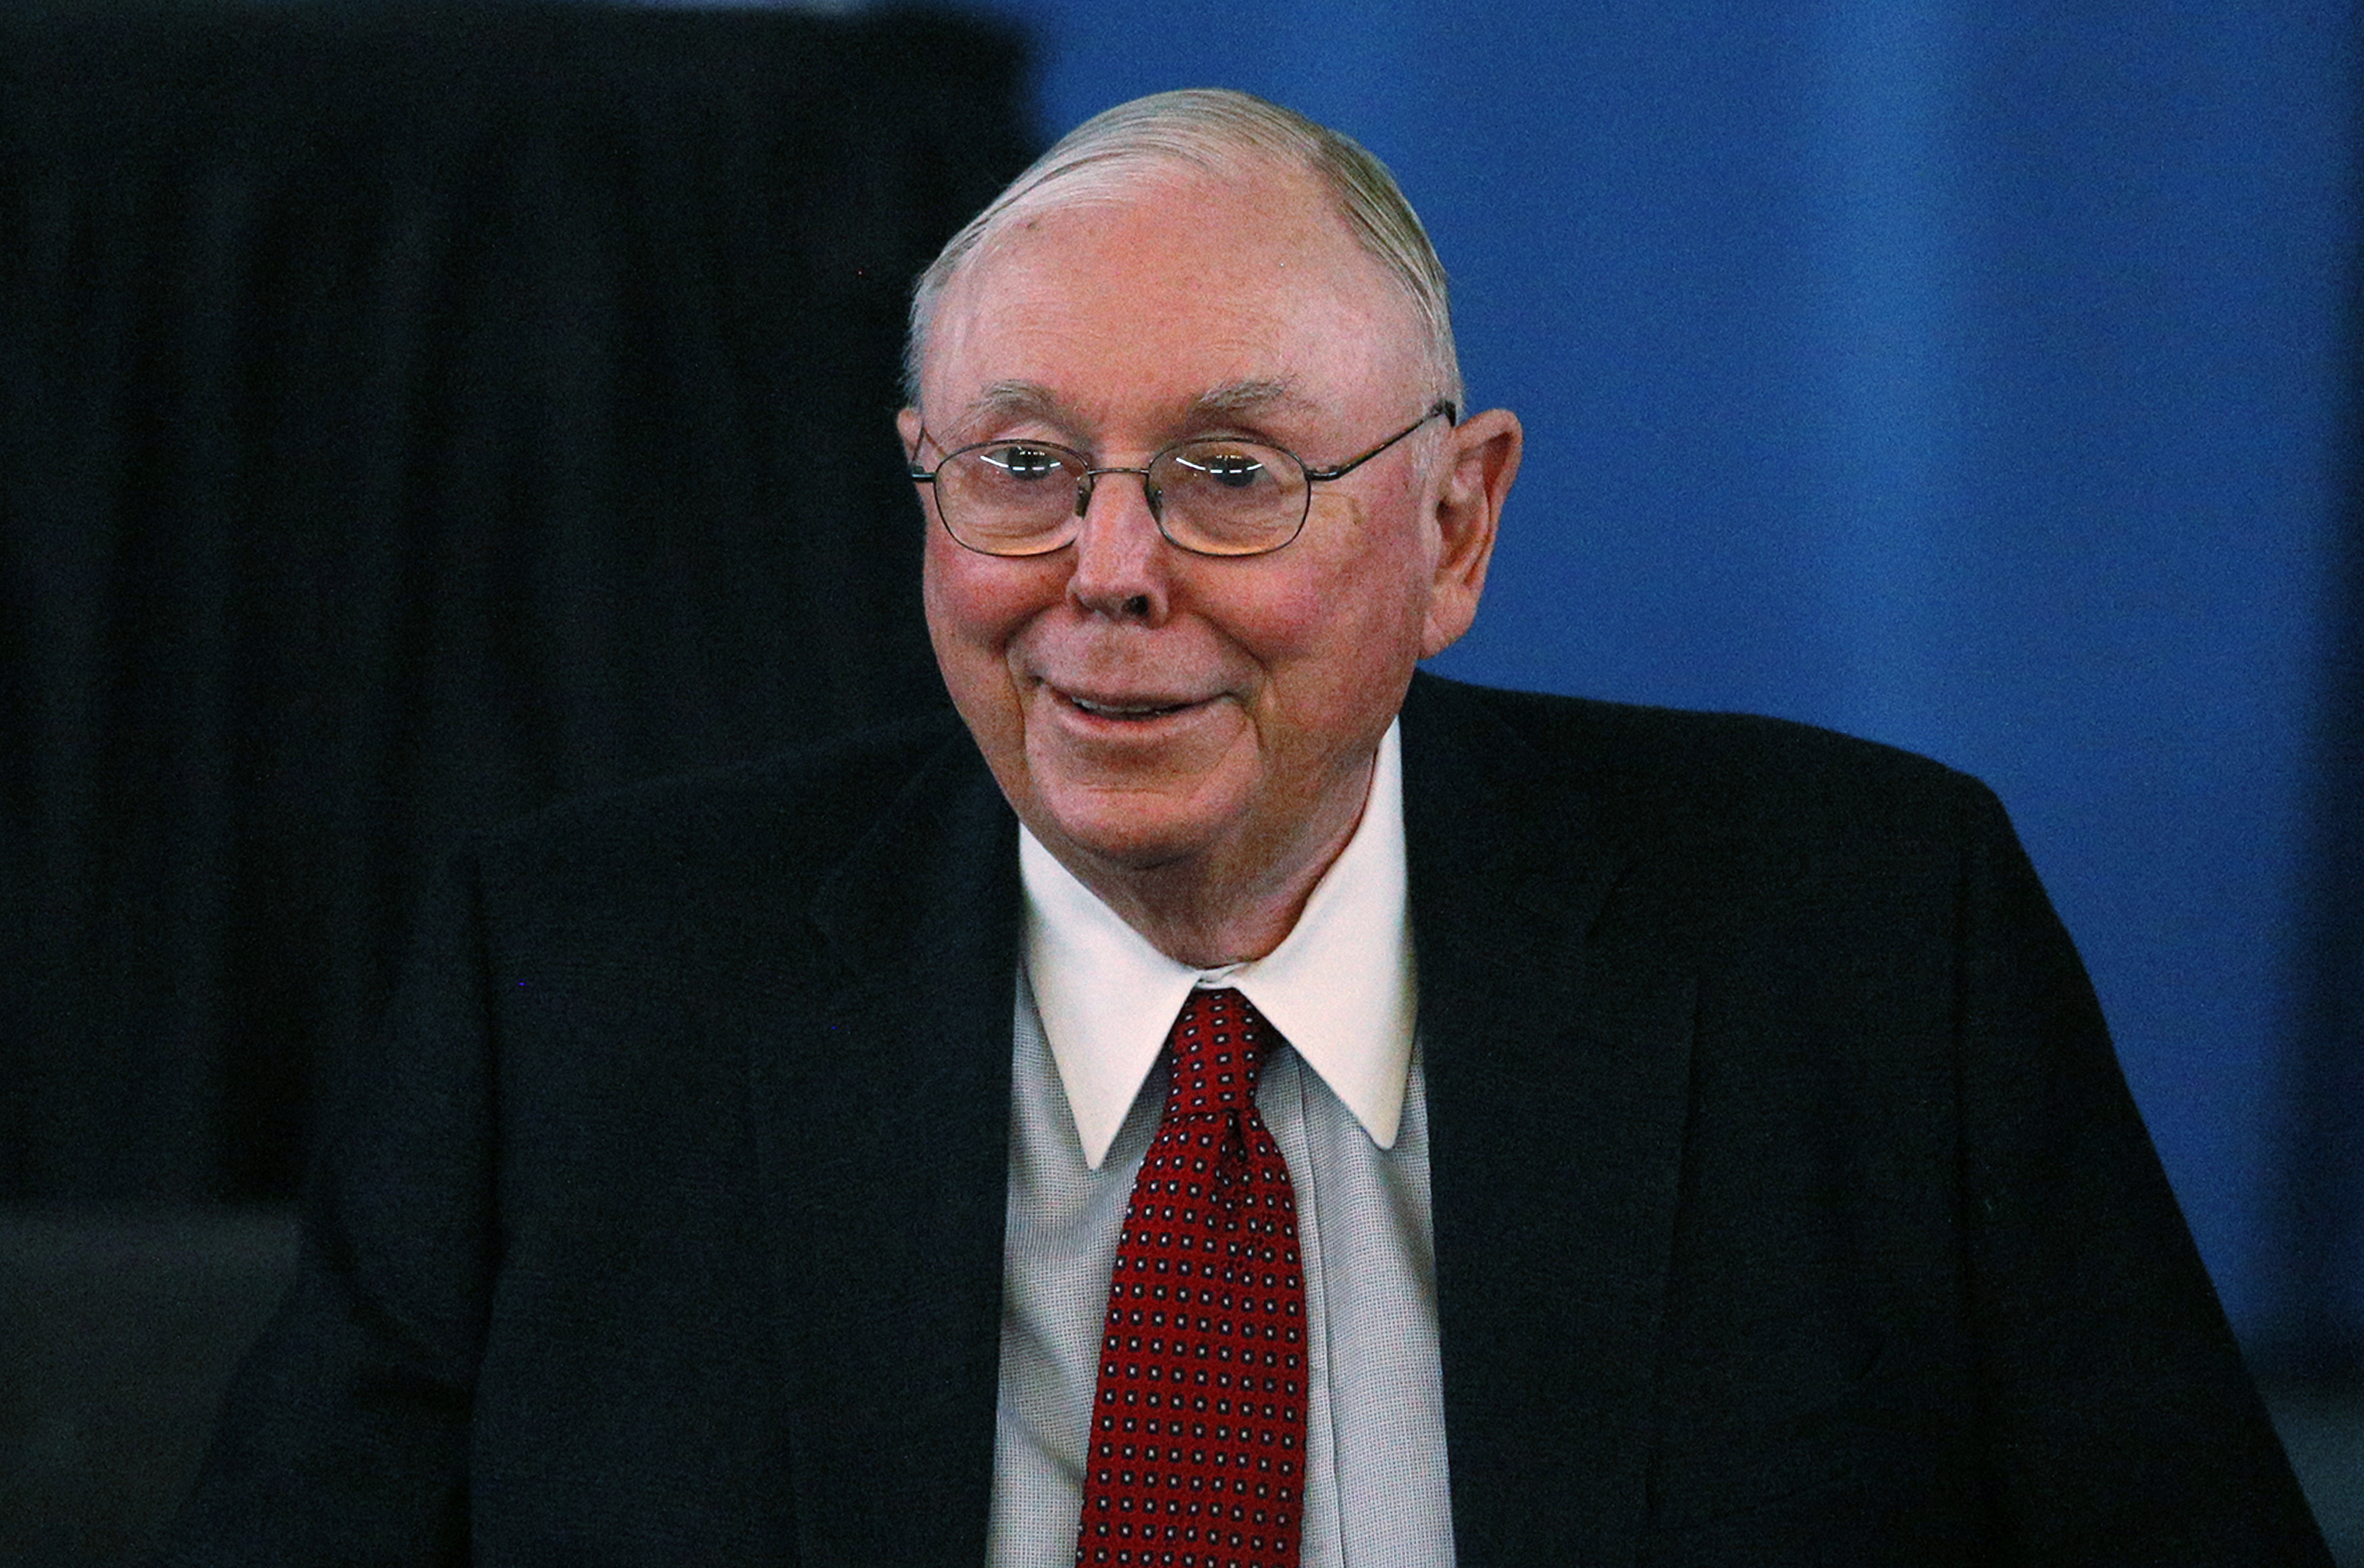 Berkshire Hathaway Vice Chairman Charlie Munger arrives to begin the company's annual meeting in Omaha May 4, 2013. REUTERS/Rick Wilking